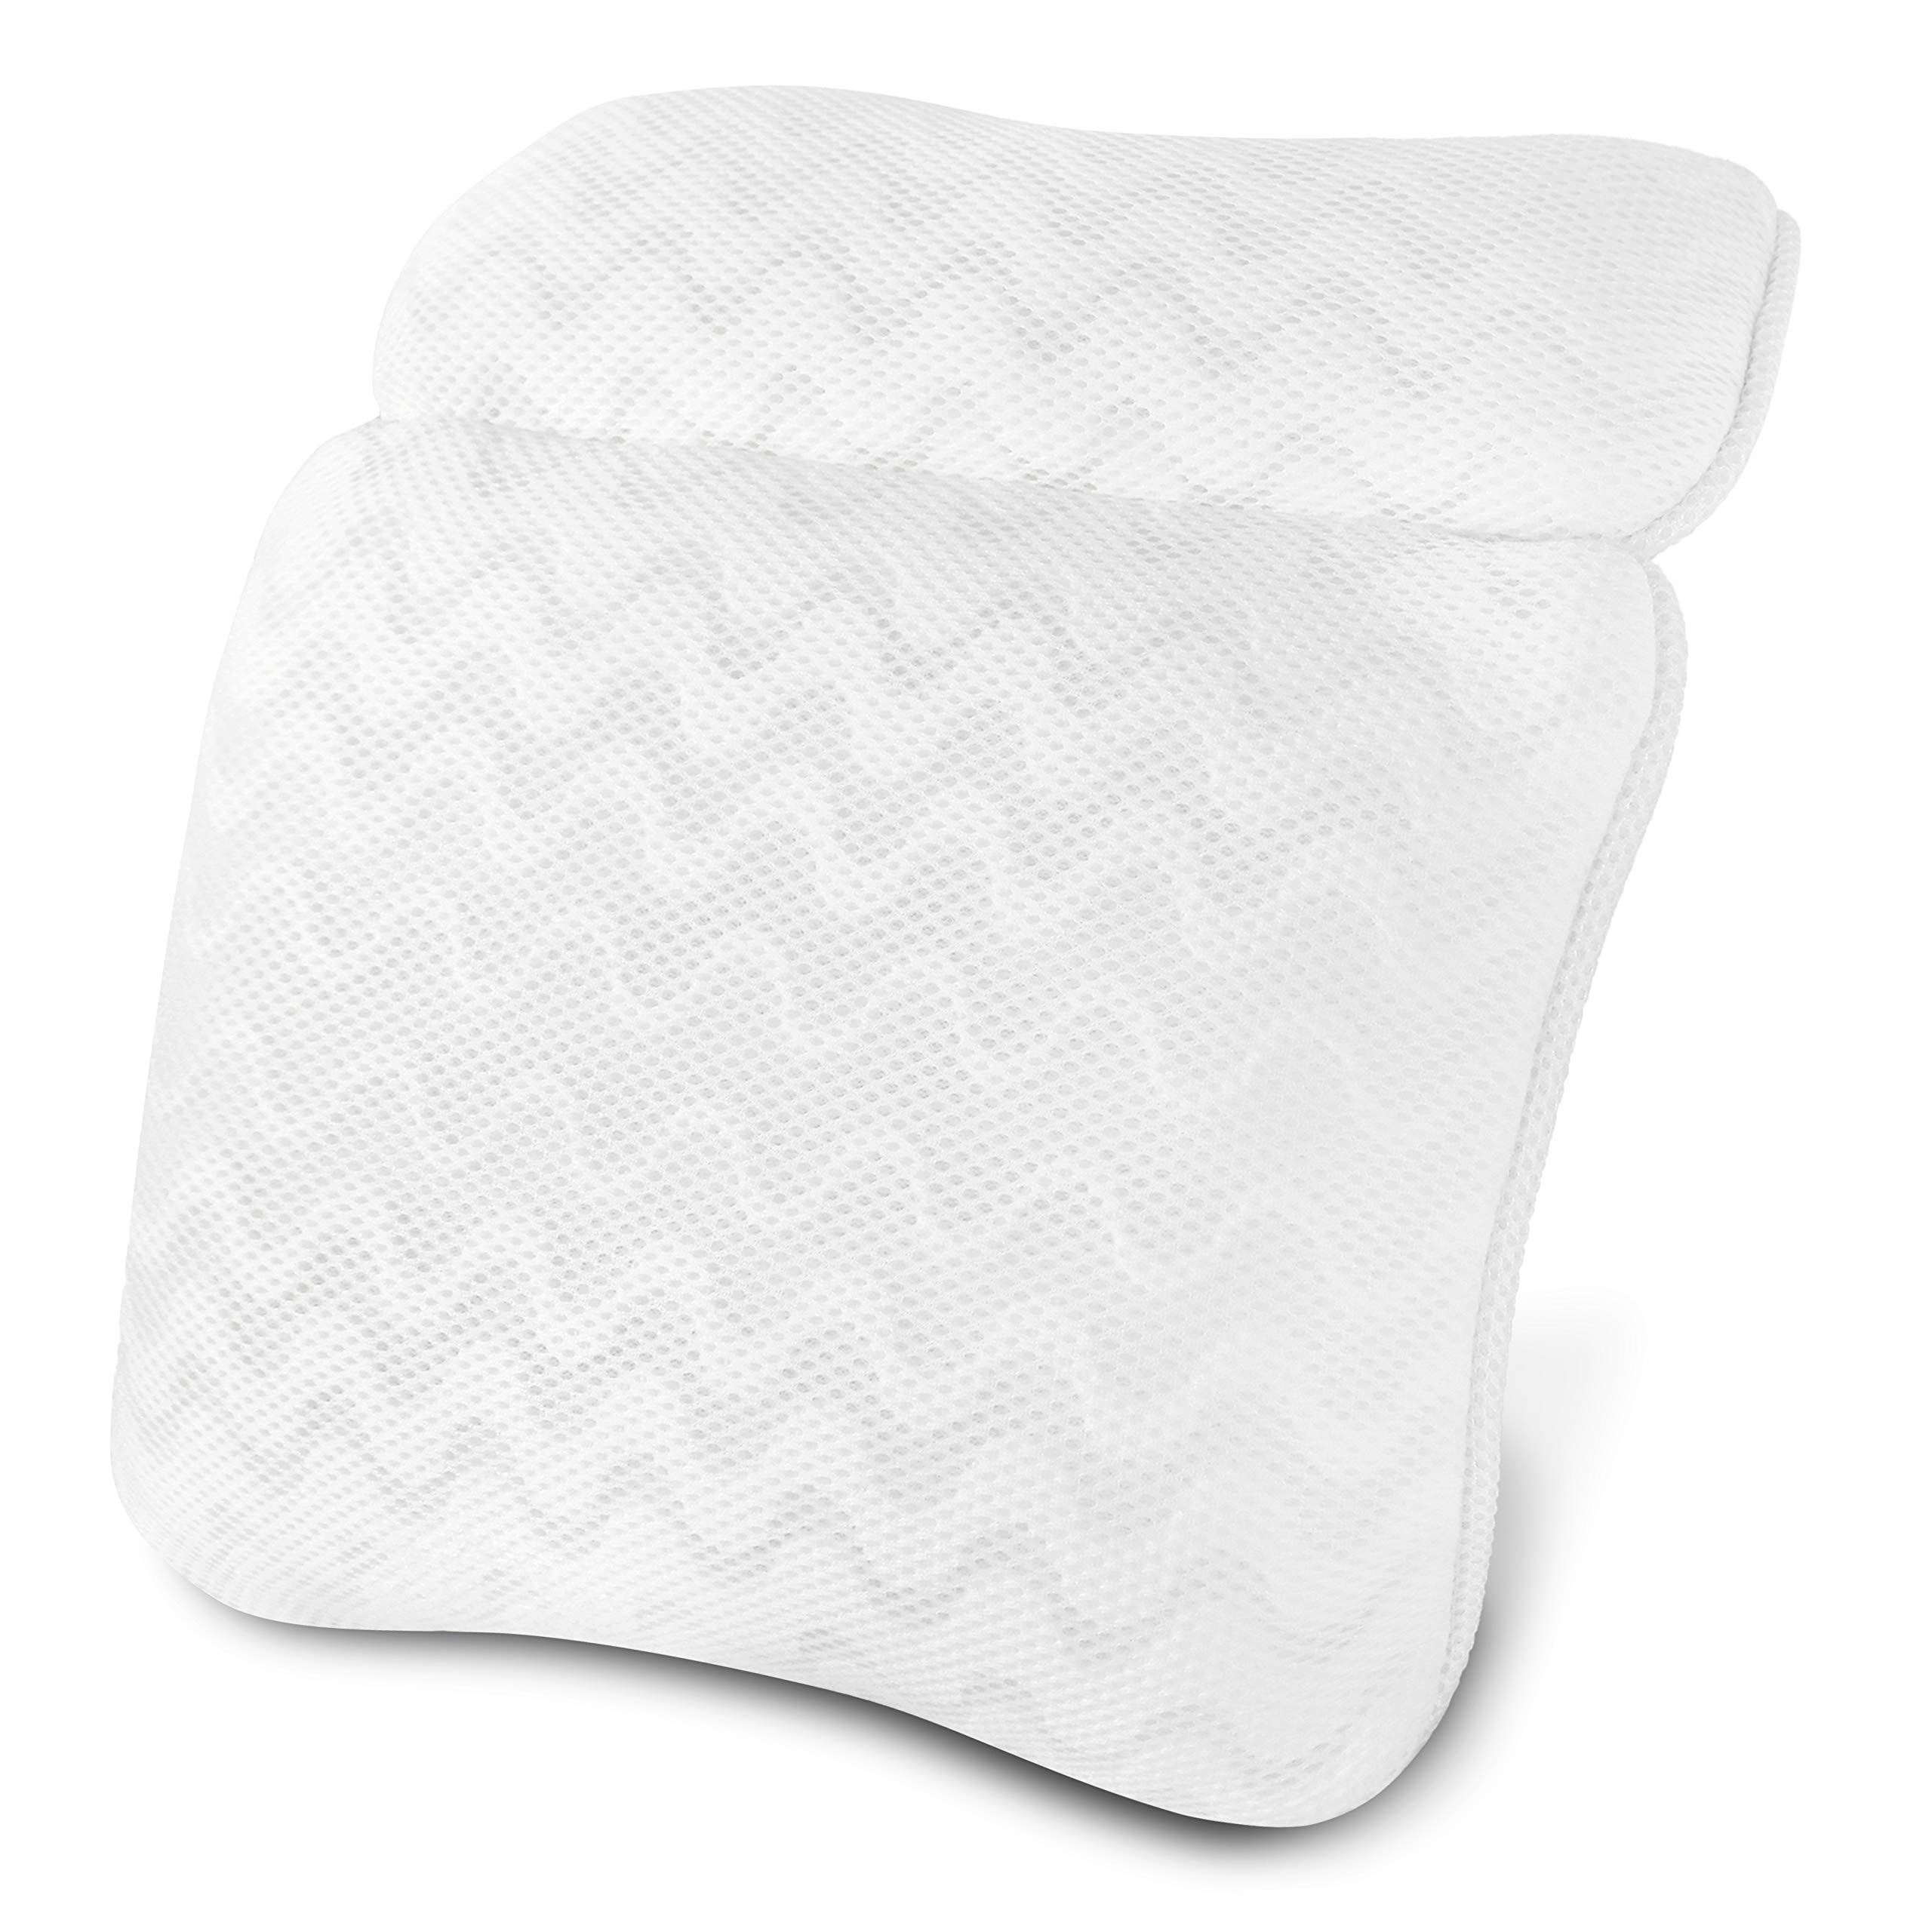 Bath Pillow for Tub, Spa Bathtub Pillow for Neck Head and Back Support, Fits Any Tub, Straight Back Tub, Soaking Tub,Jacuzzi Hot Tub, 3D Air Mesh Technology, Machine Washable, 6 Non-Slip Suction Cups by Shengsite